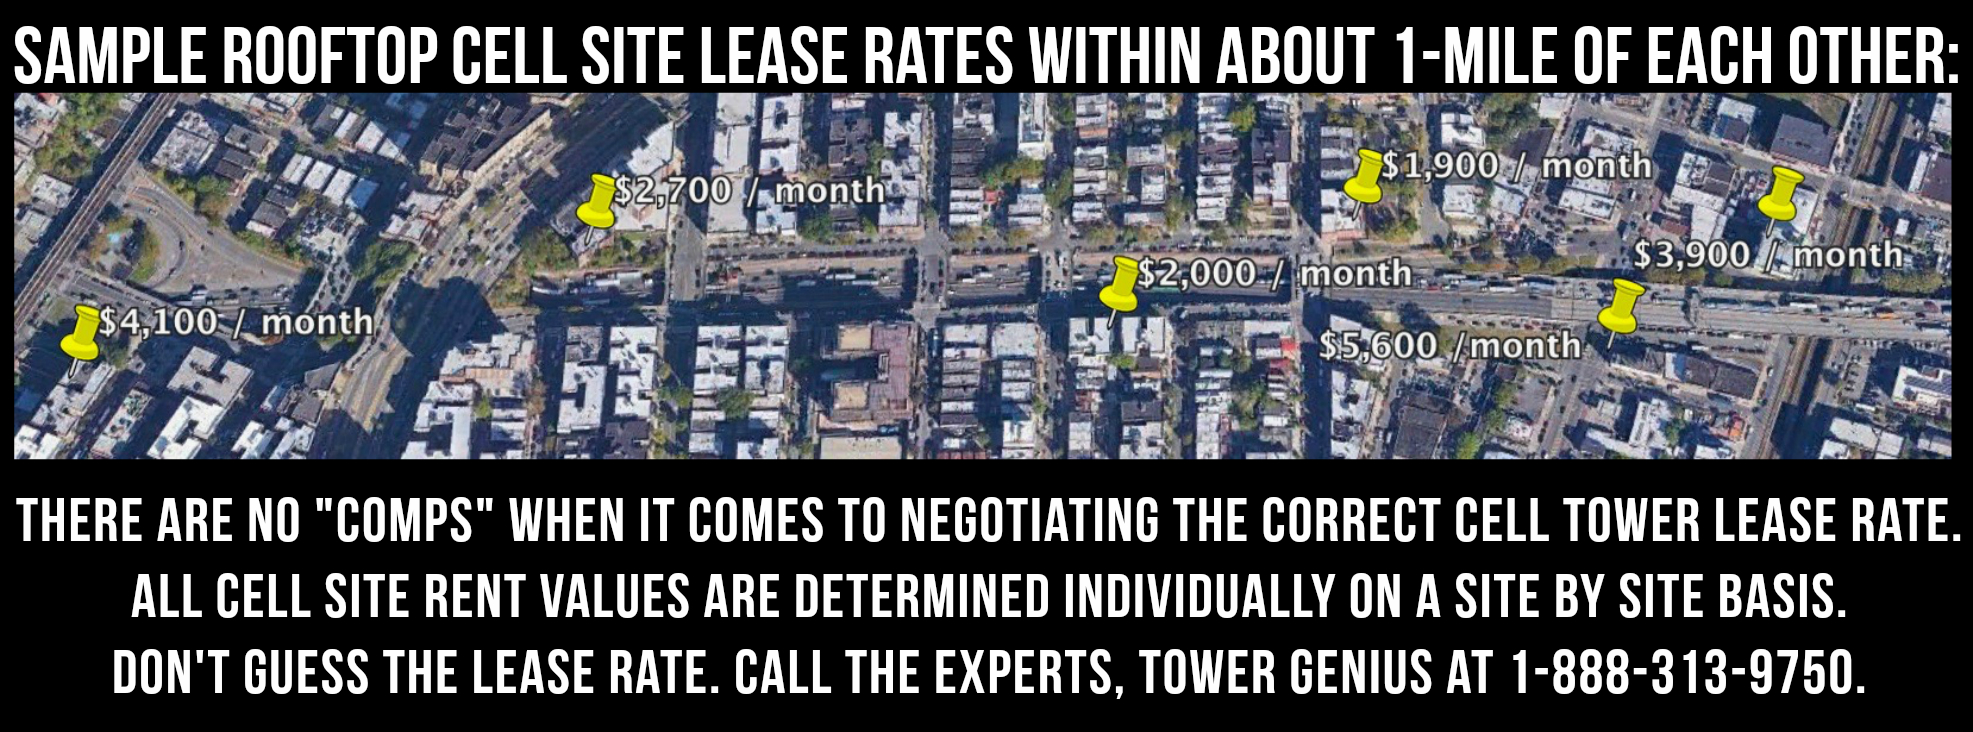 How Cell Tower Lease Rates Are Determined >> Tower Genius Formula